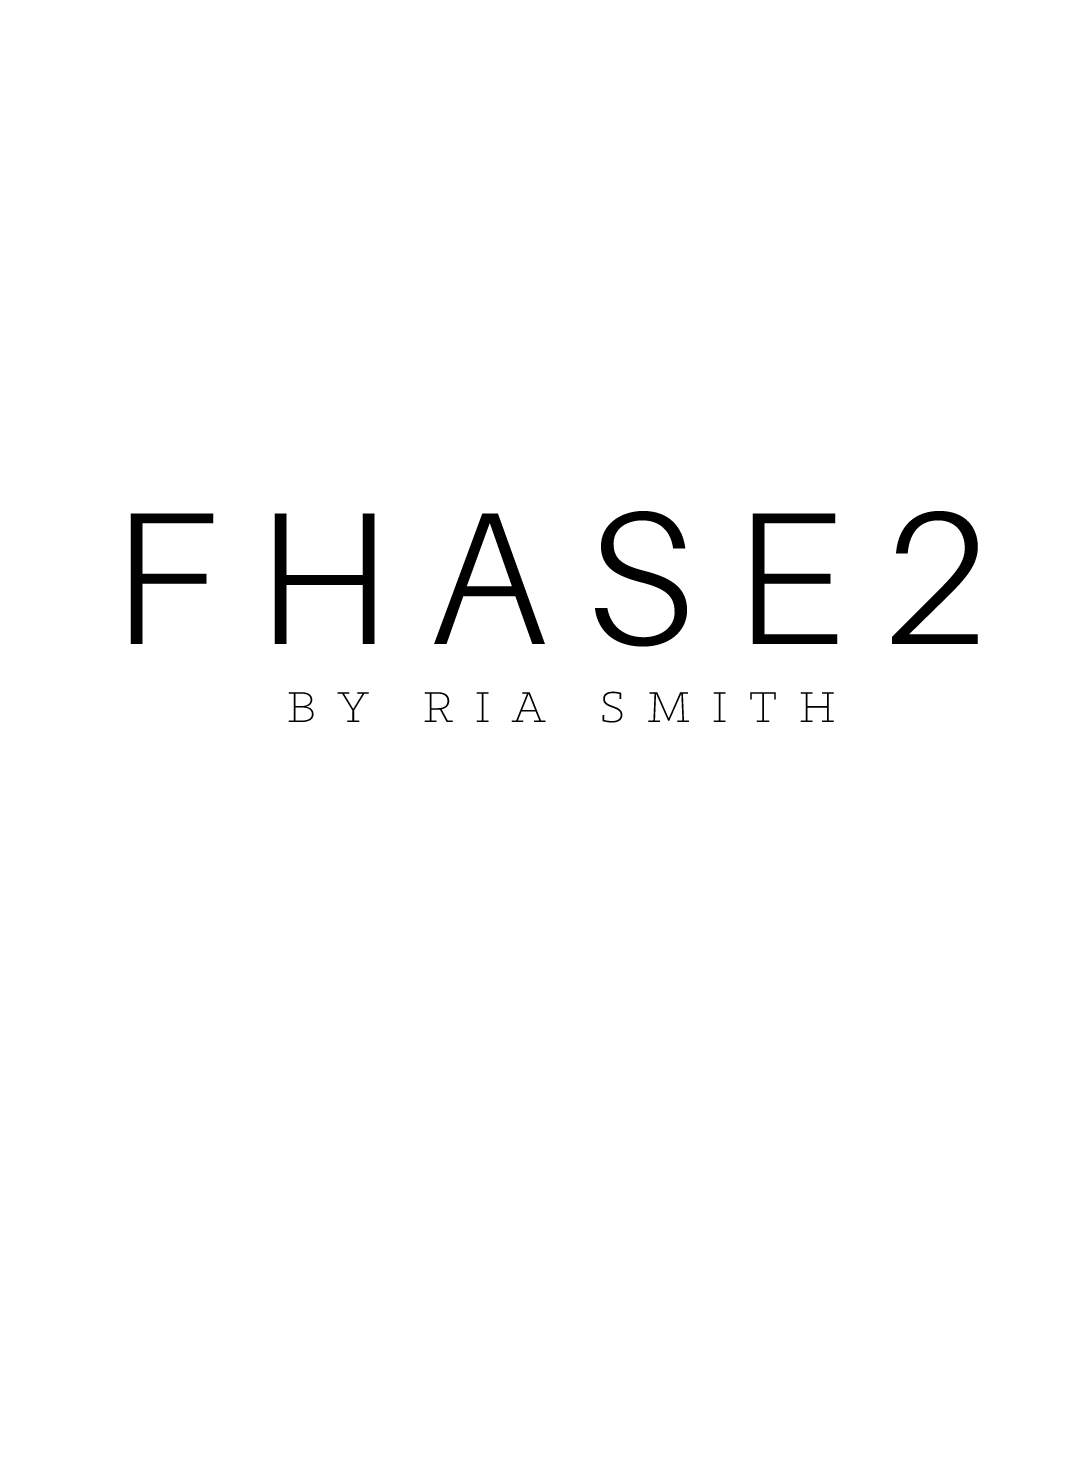 Fhase2